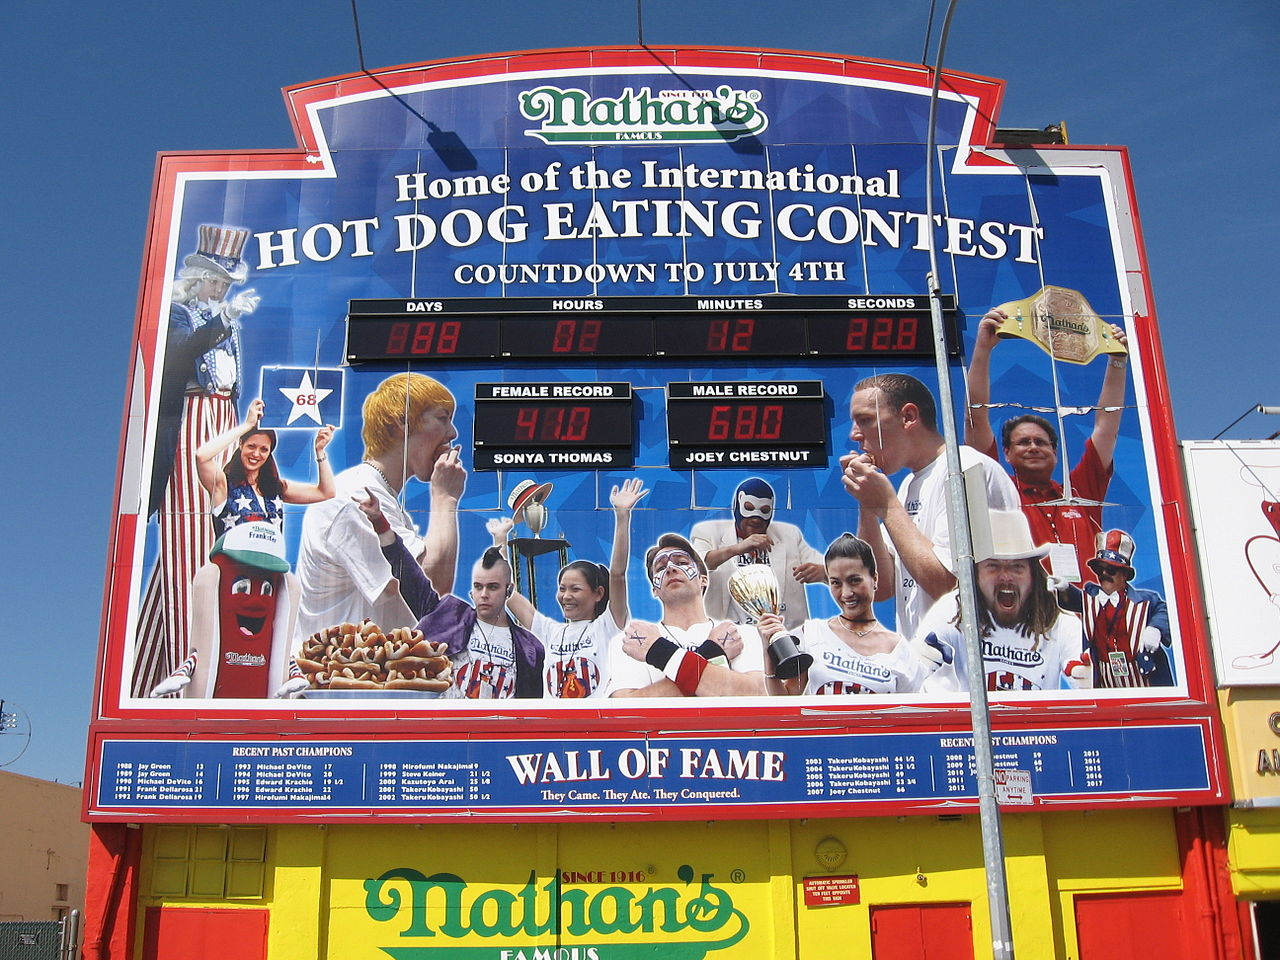 Nathans_hotdog_contest_countdown_clock By Kcpwiki - Own work, CC BY-SA 3.0